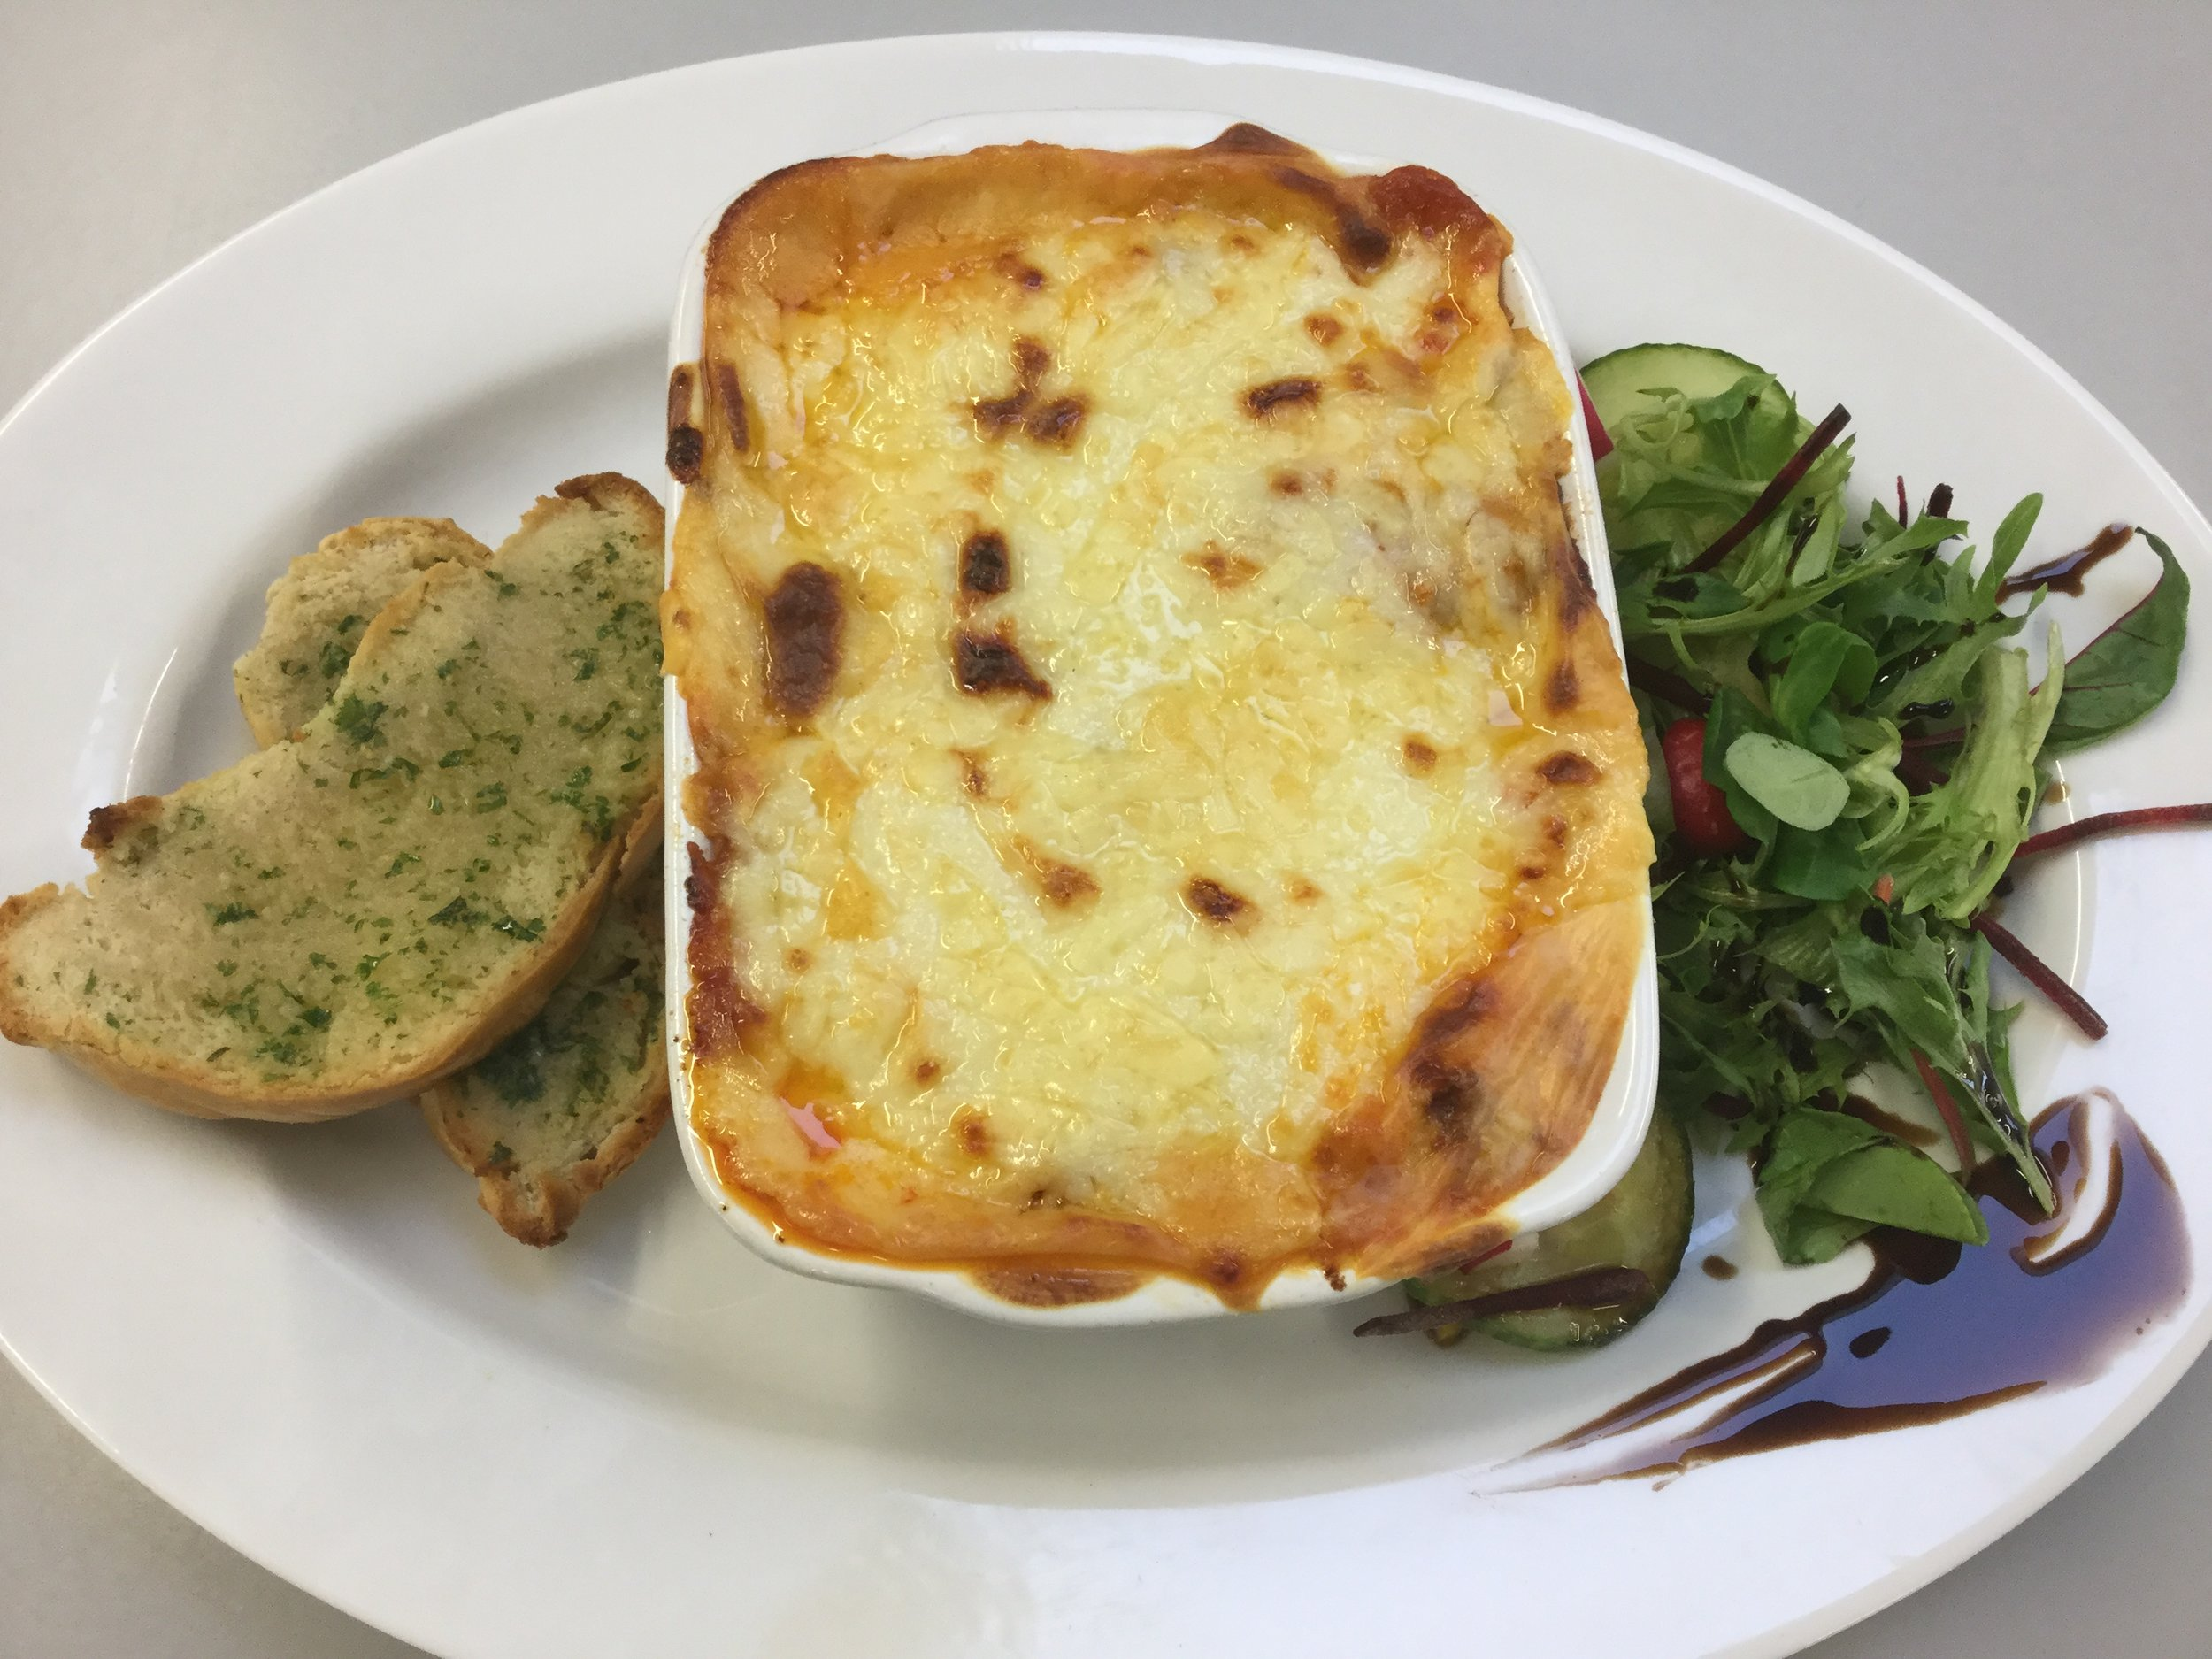 The finished lasagne dish